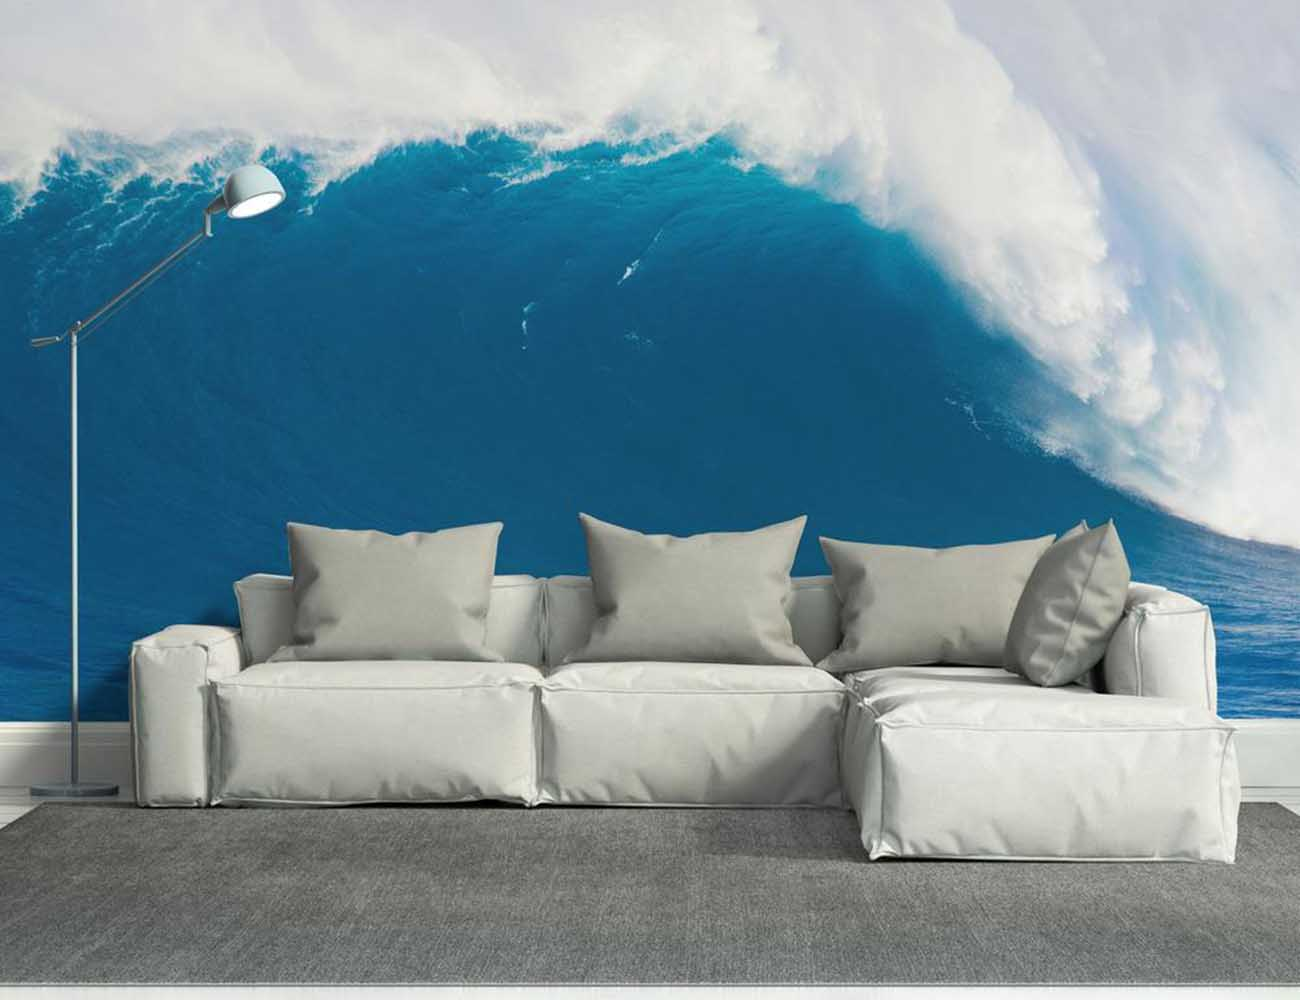 Wave wall stencil choice image home wall decoration ideas wave wall mural images home wall decoration ideas big surf wave wall mural big wave wall amipublicfo Images